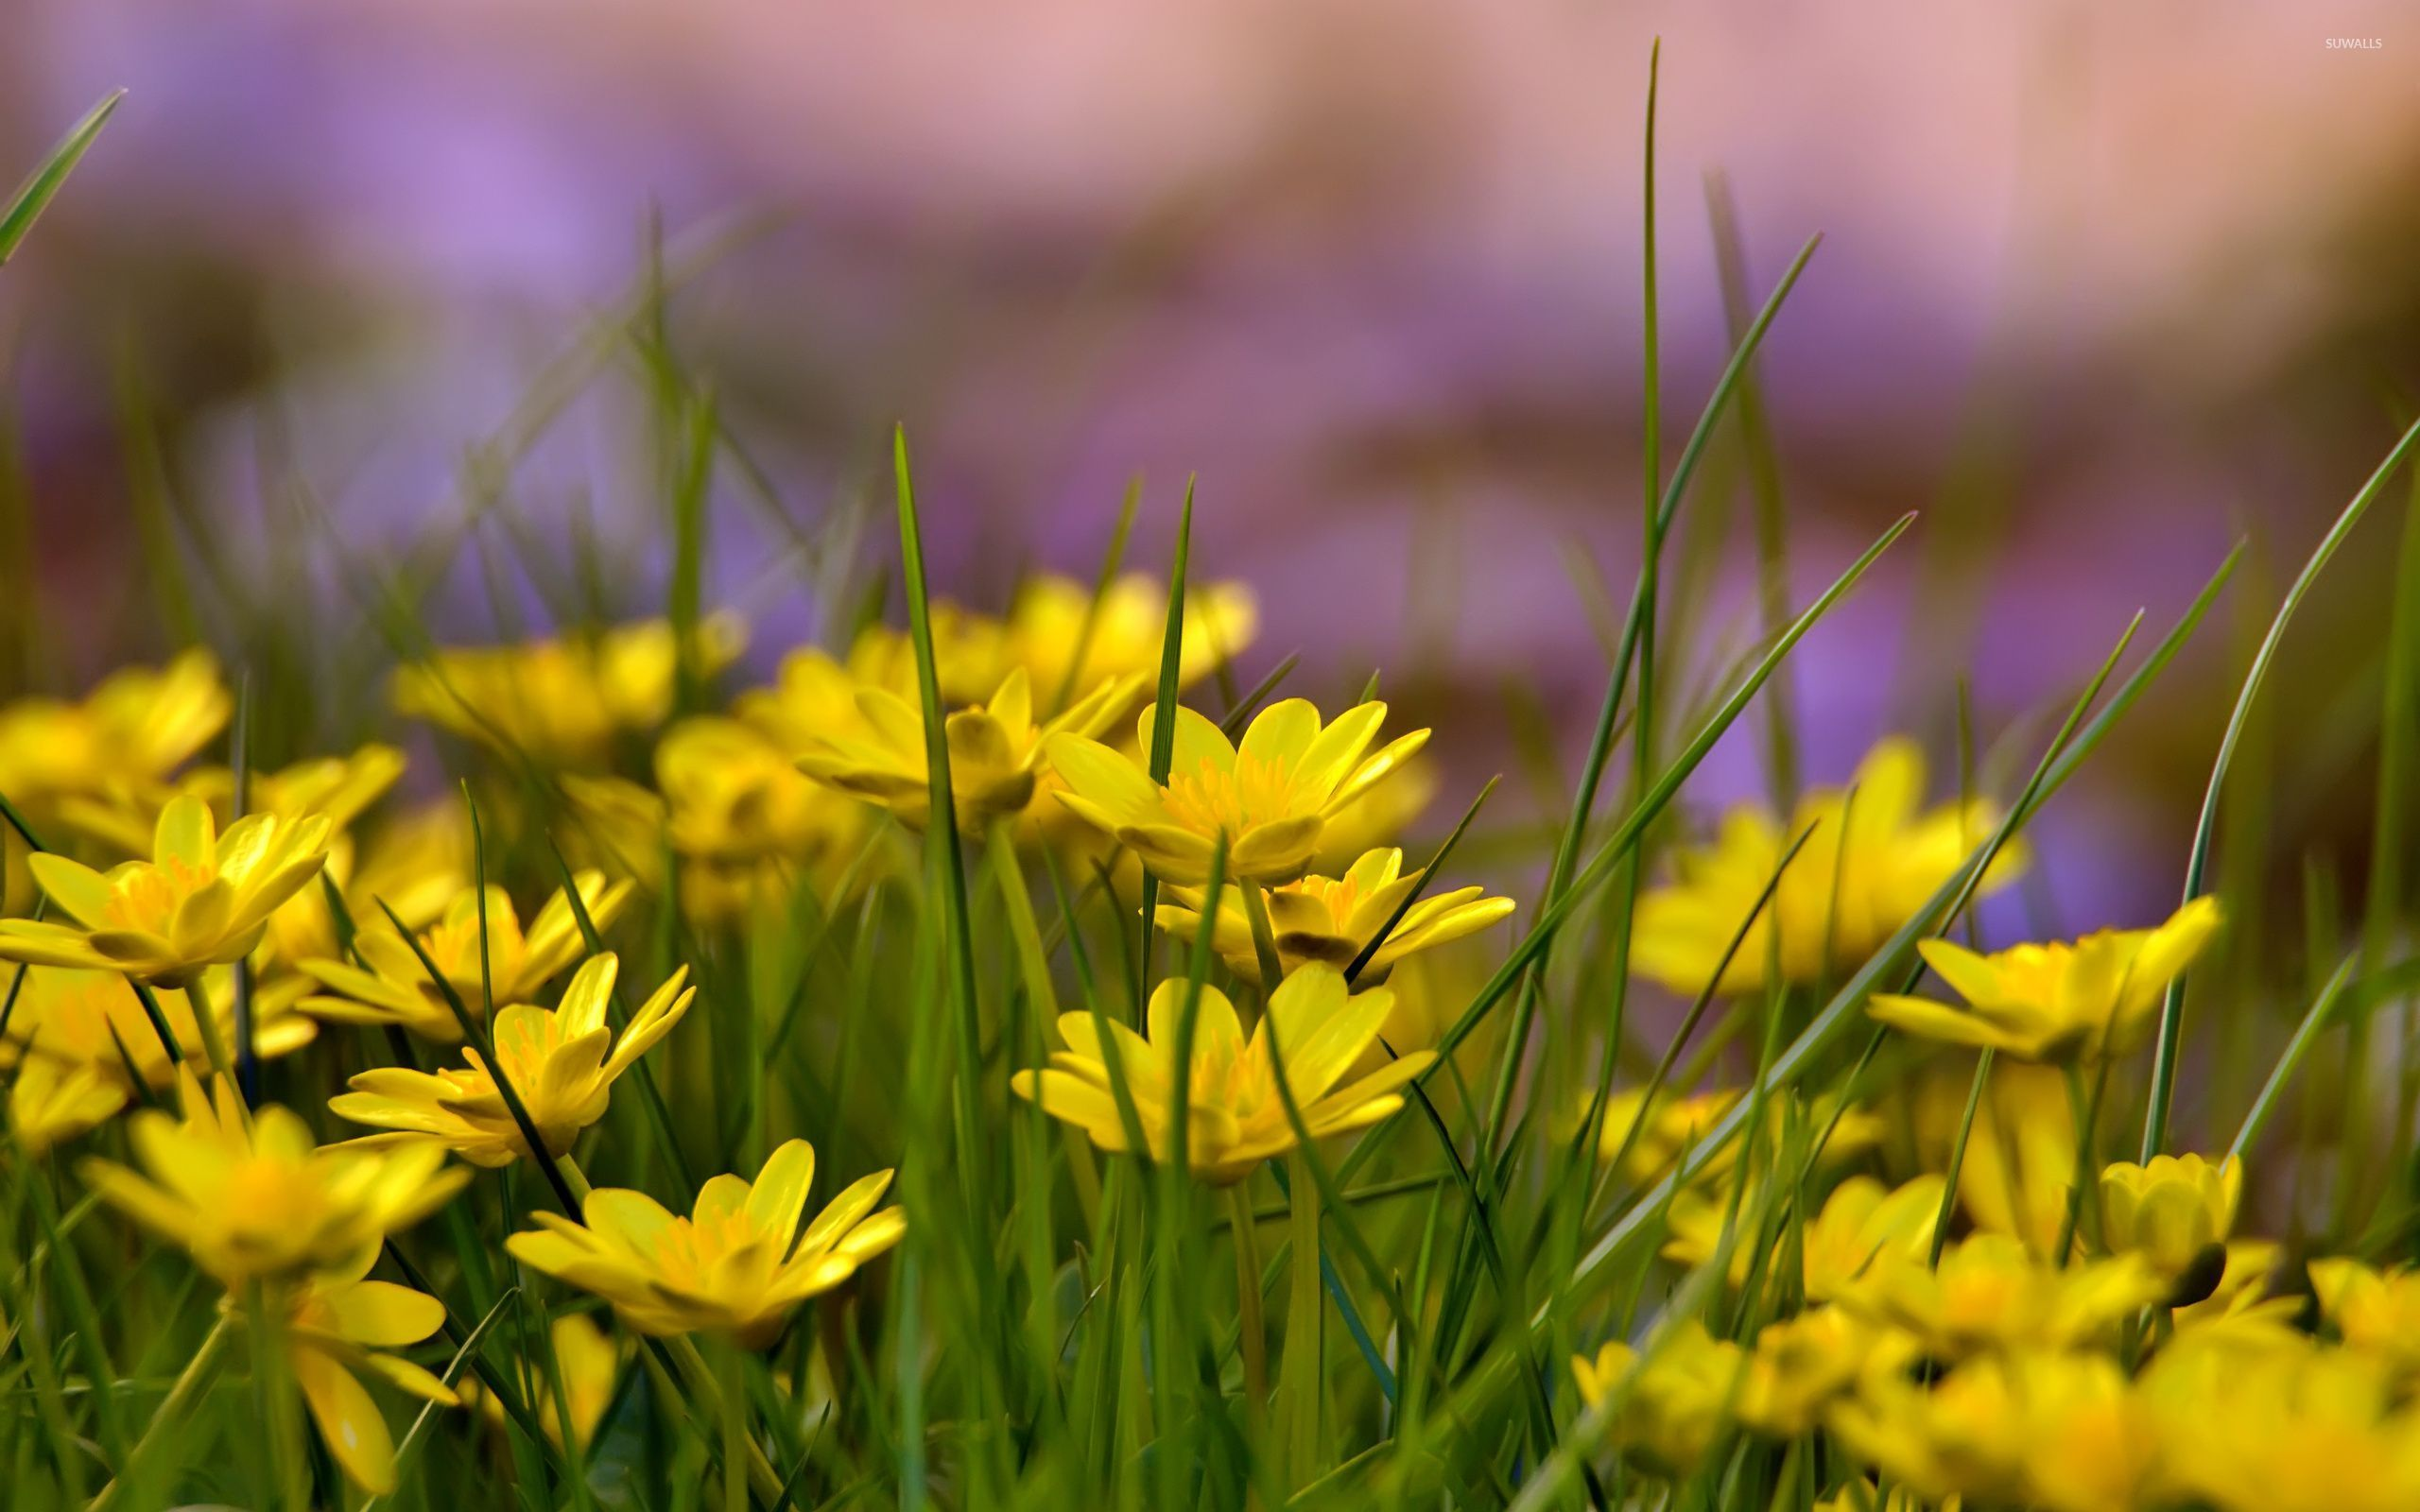 Flowers With Yellow Petals 32614 2560×1600 Wallpaper